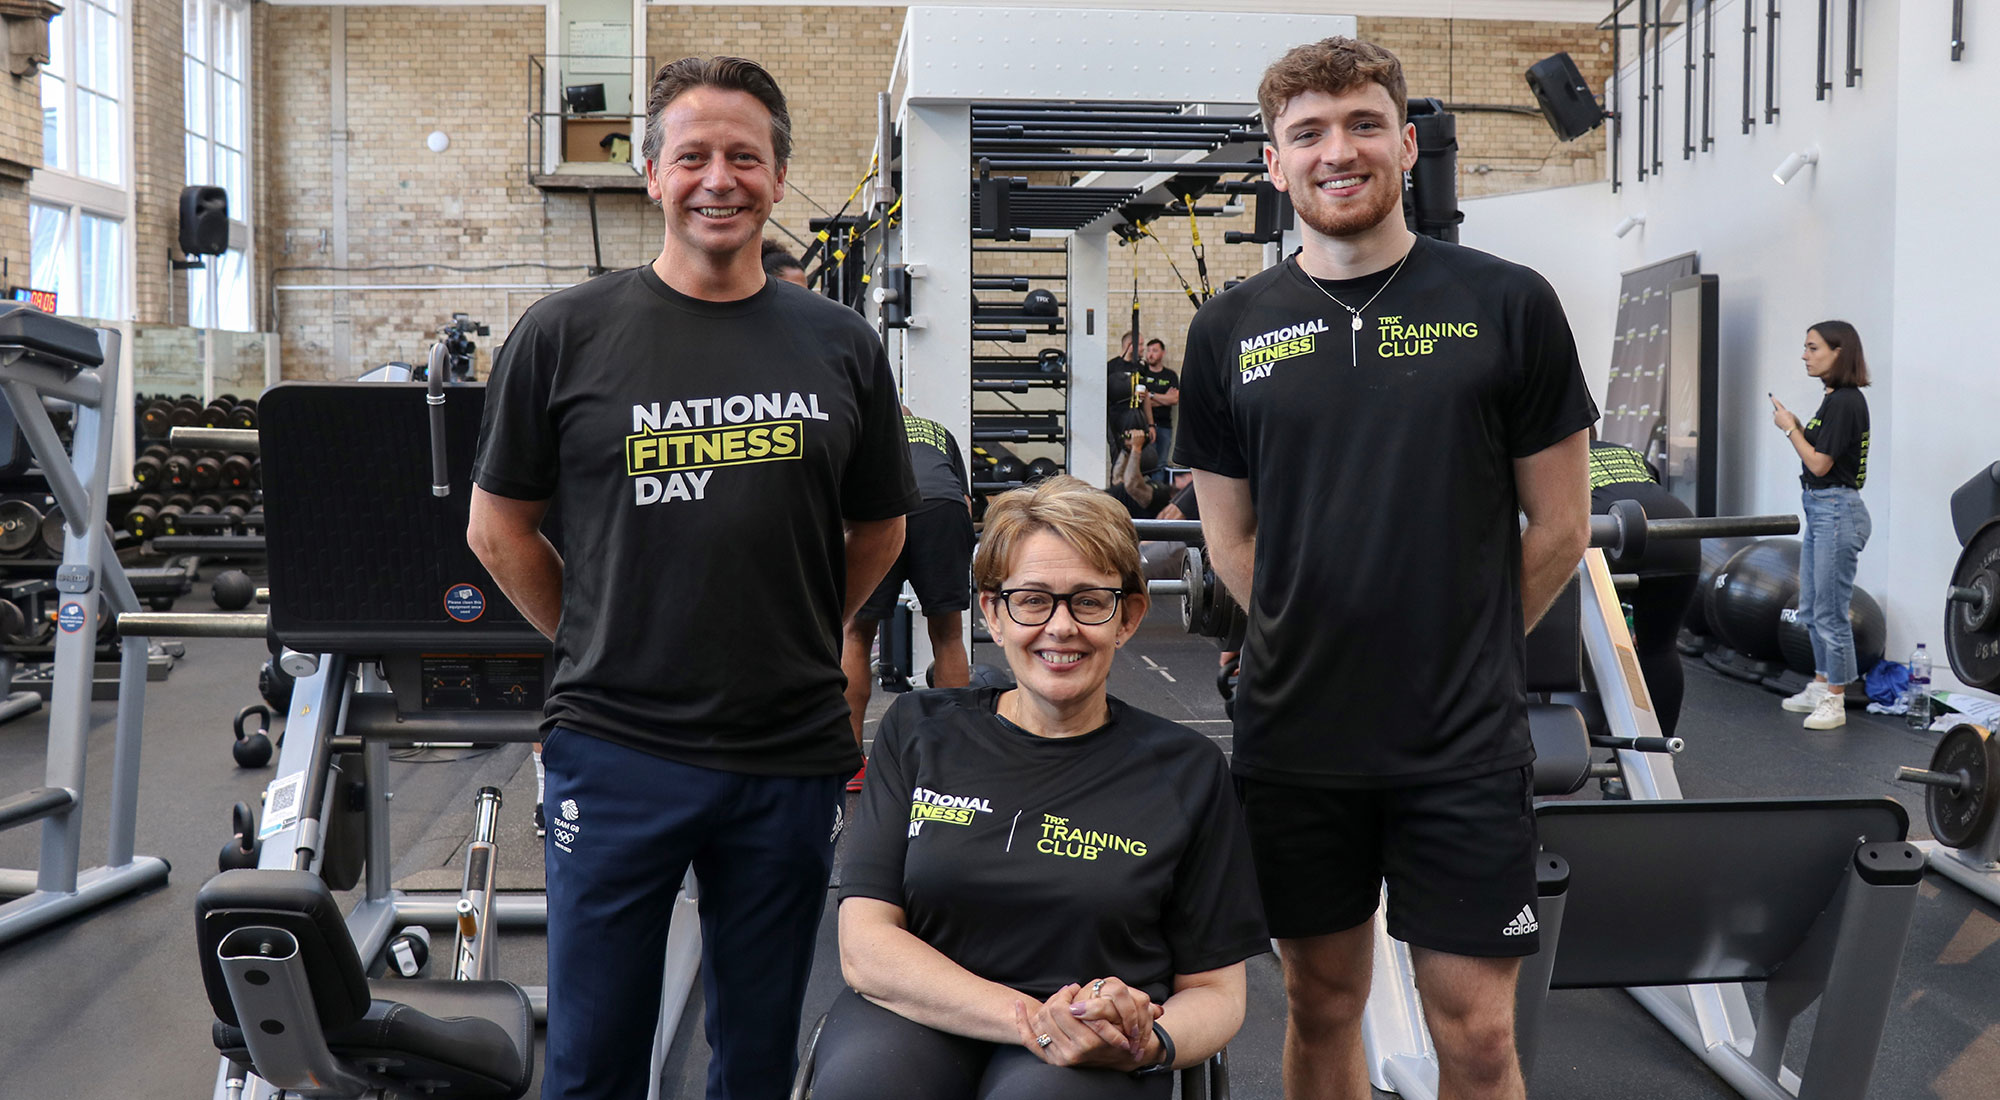 Matty Lee, Tanni Grey-Thompson and Nigel Huddleston call for nation to get moving as millions join National Fitness Day celebrations